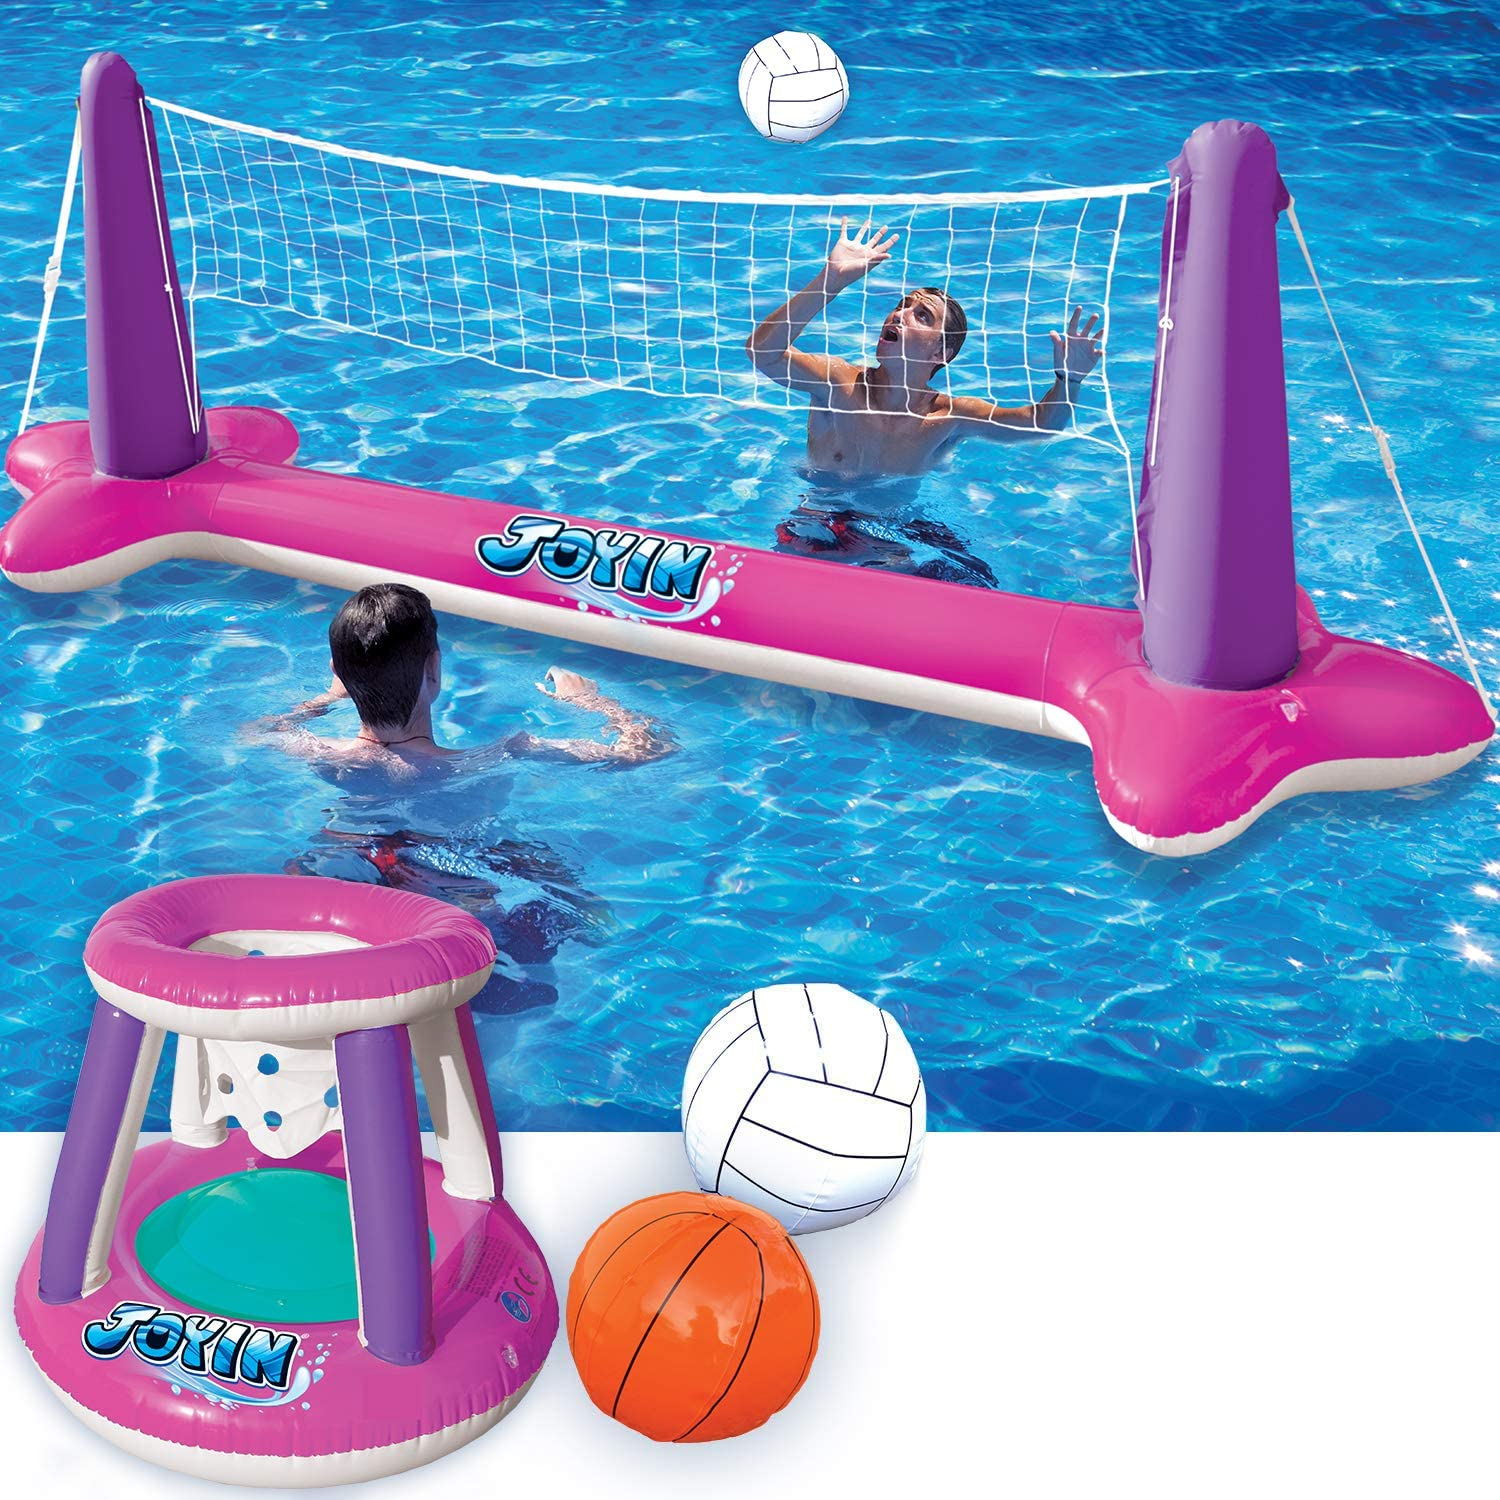 Inflatable Gorgeous Volleyball Net Basketball Hoops Set Pink Outlet SALE Float Pool